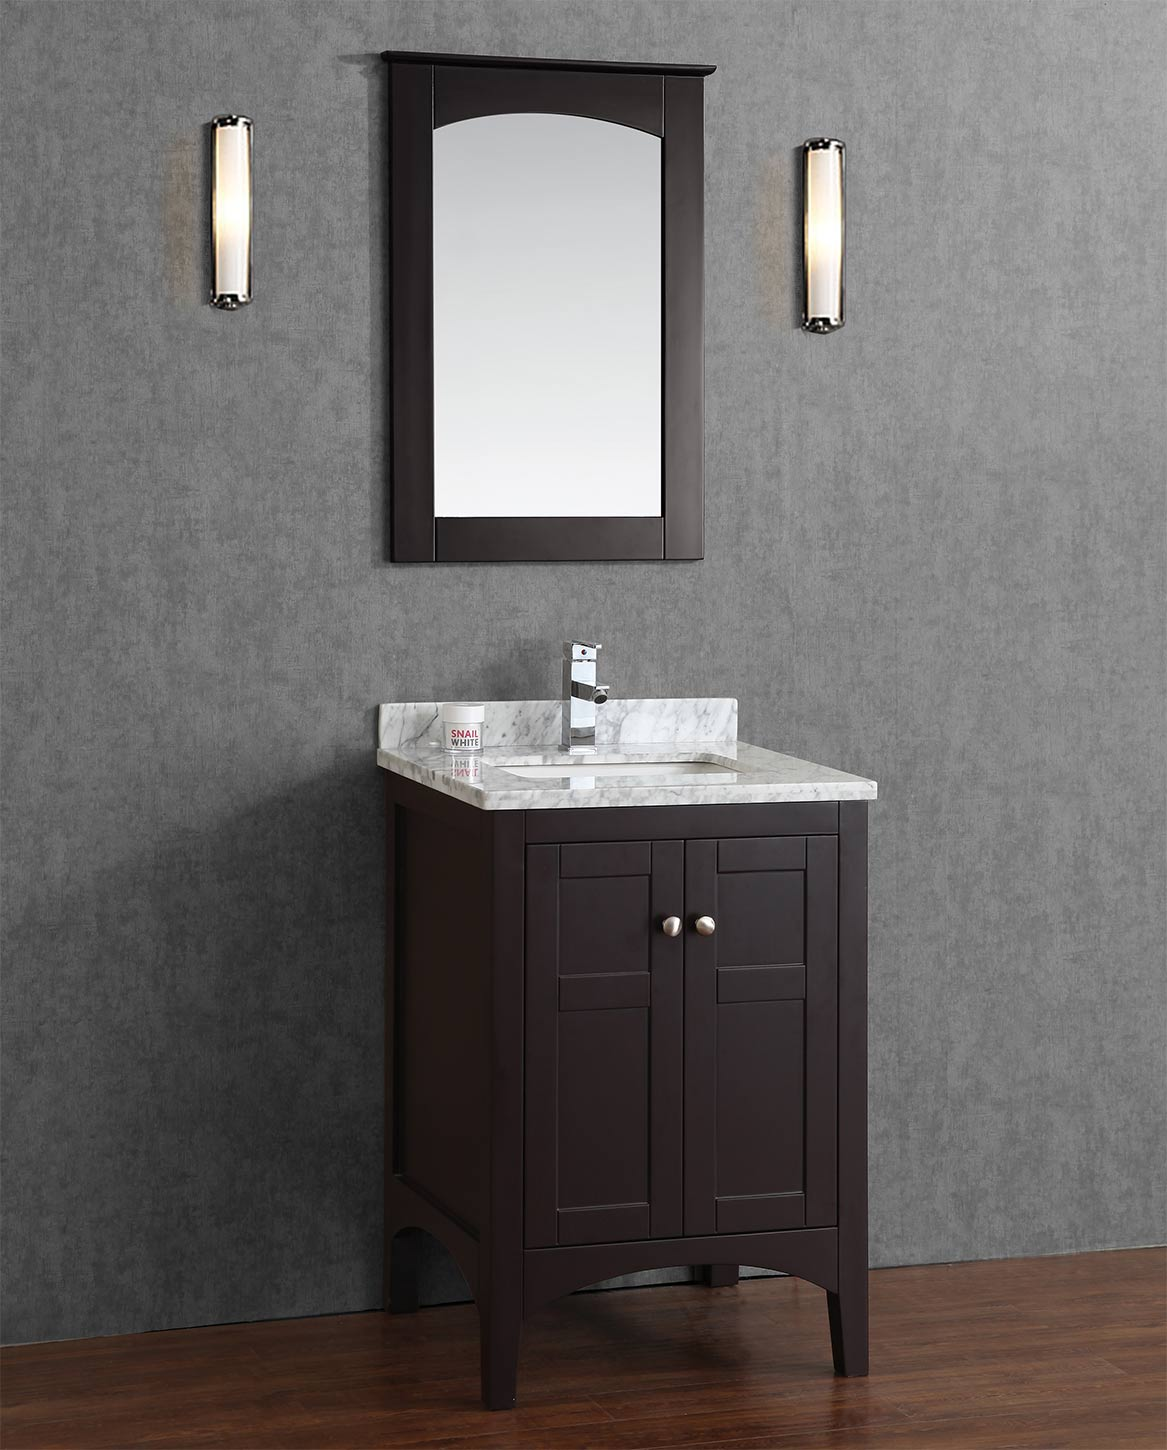 Buy Martin 24 Inch Solid Wood Single Bathroom Vanity In Espresso Hm 001 24 Wmsq Esp